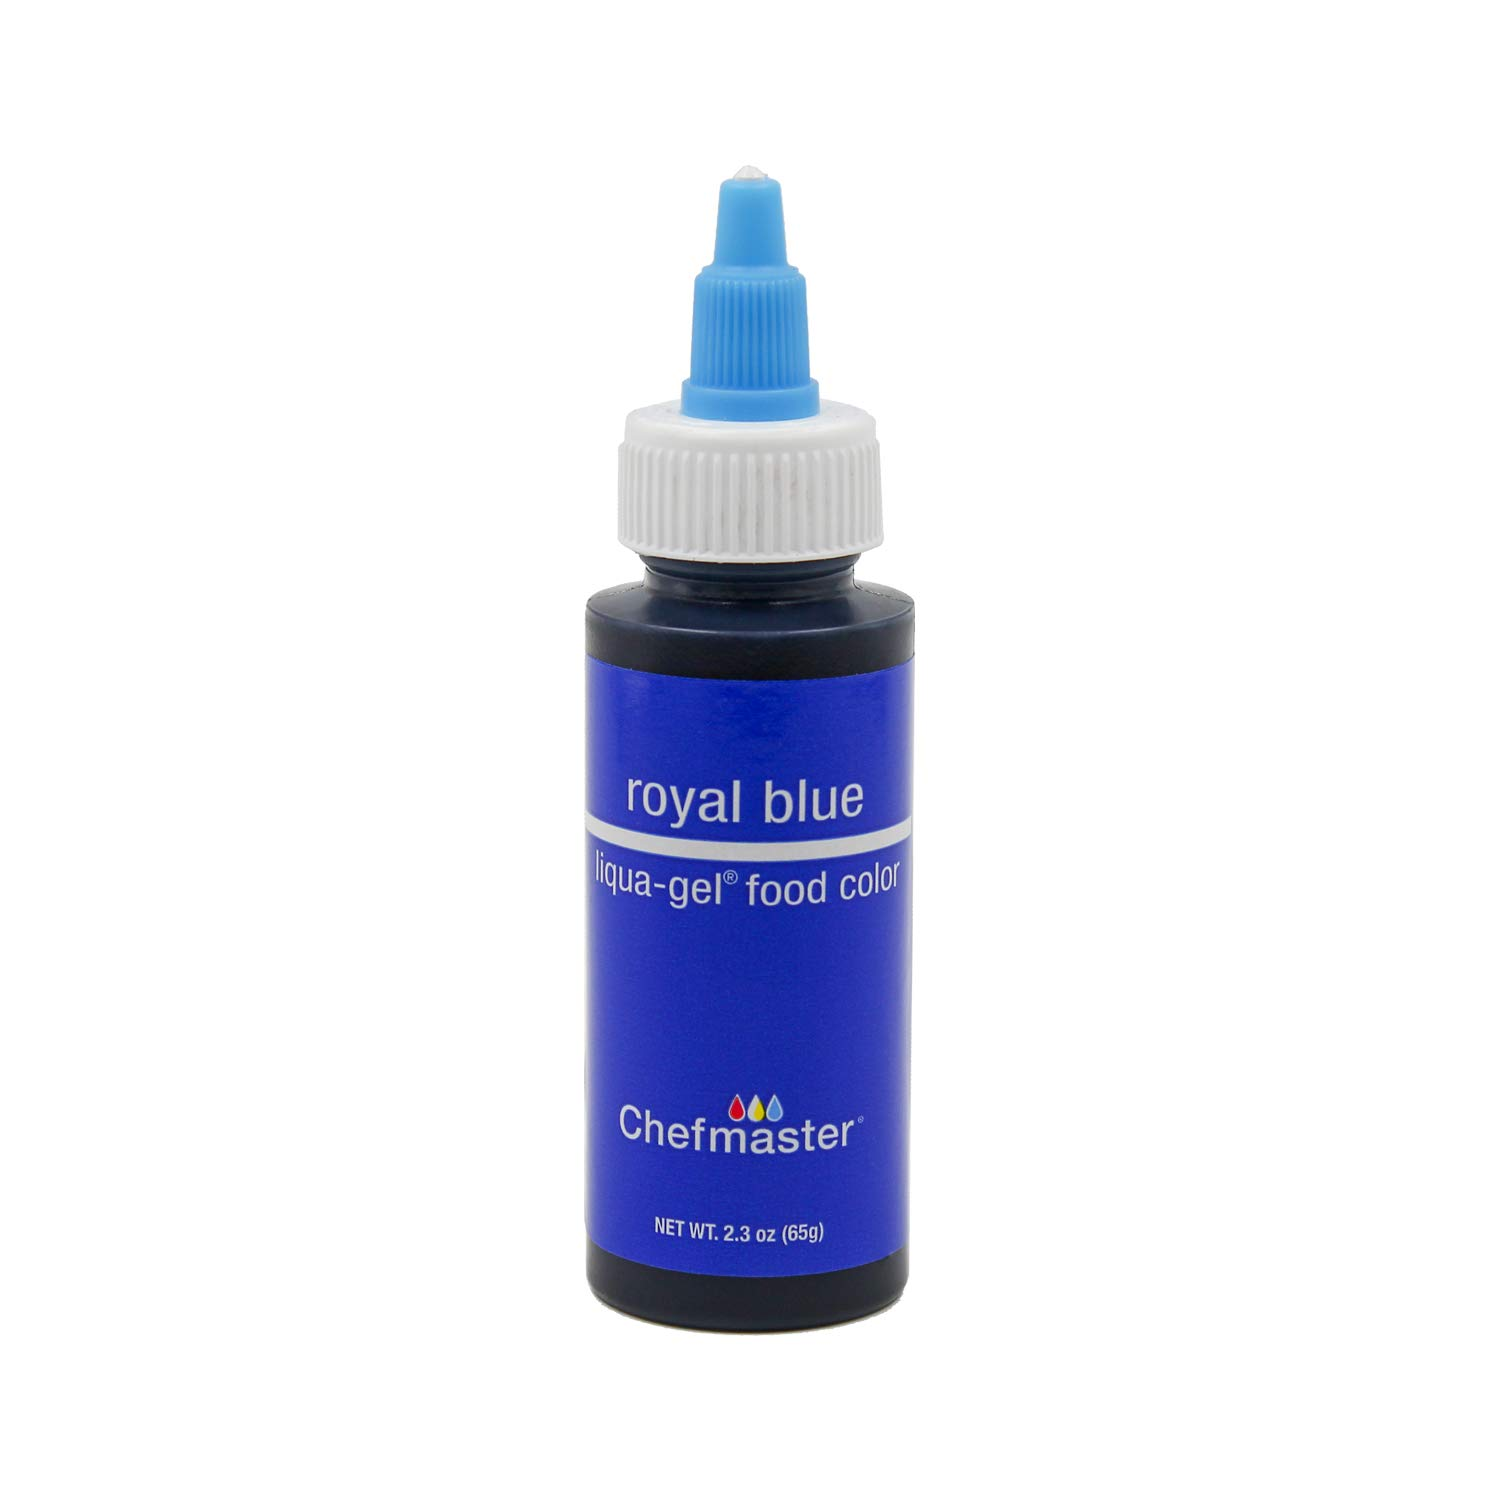 Chefmaster Liqua-Gel Food Color 2.3 oz. - Royal Blue